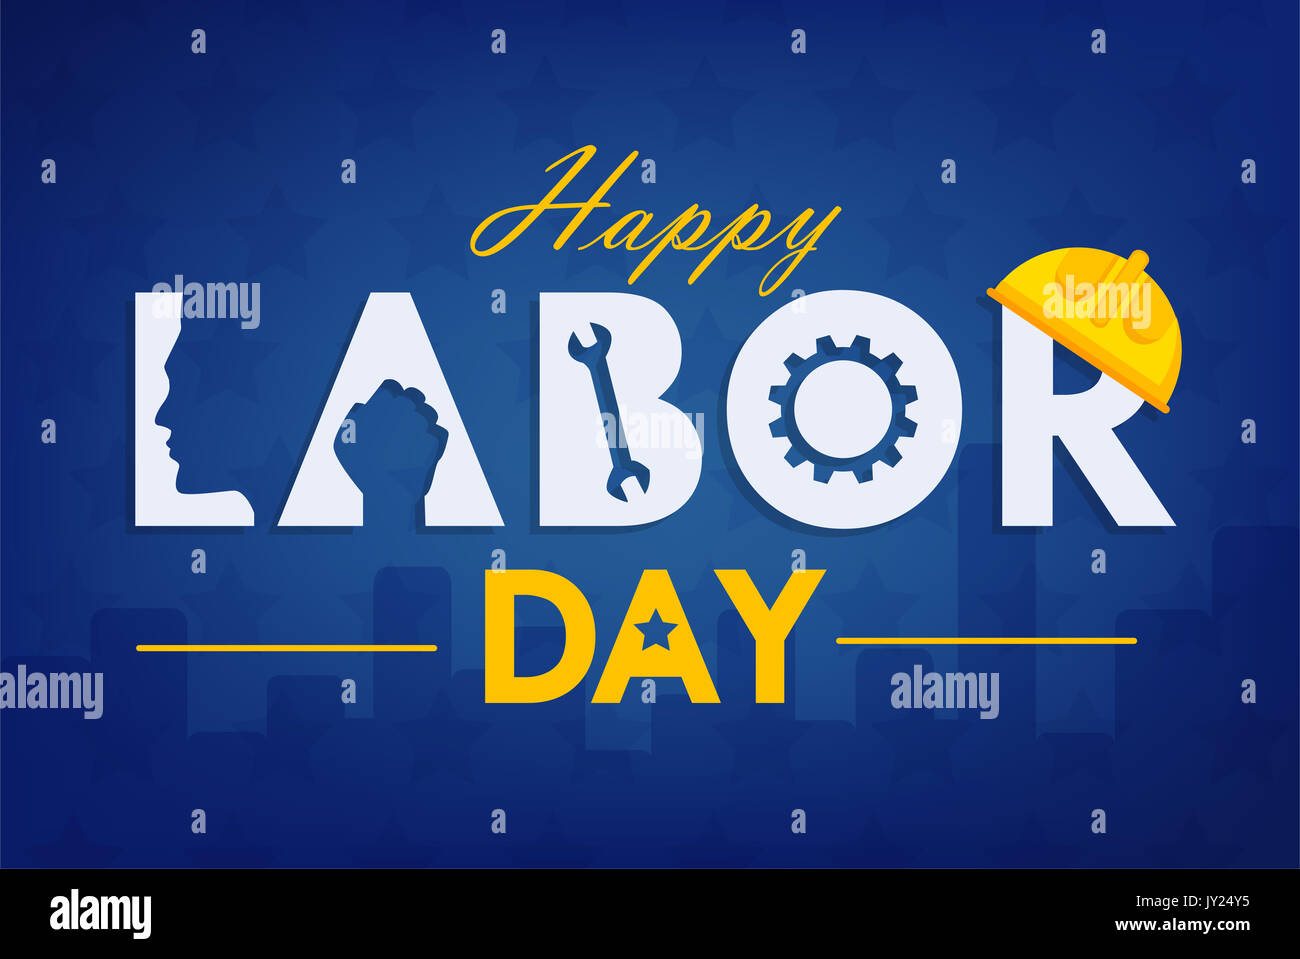 Labor Day Background Design Vector Template Graphic Or Banners Stock